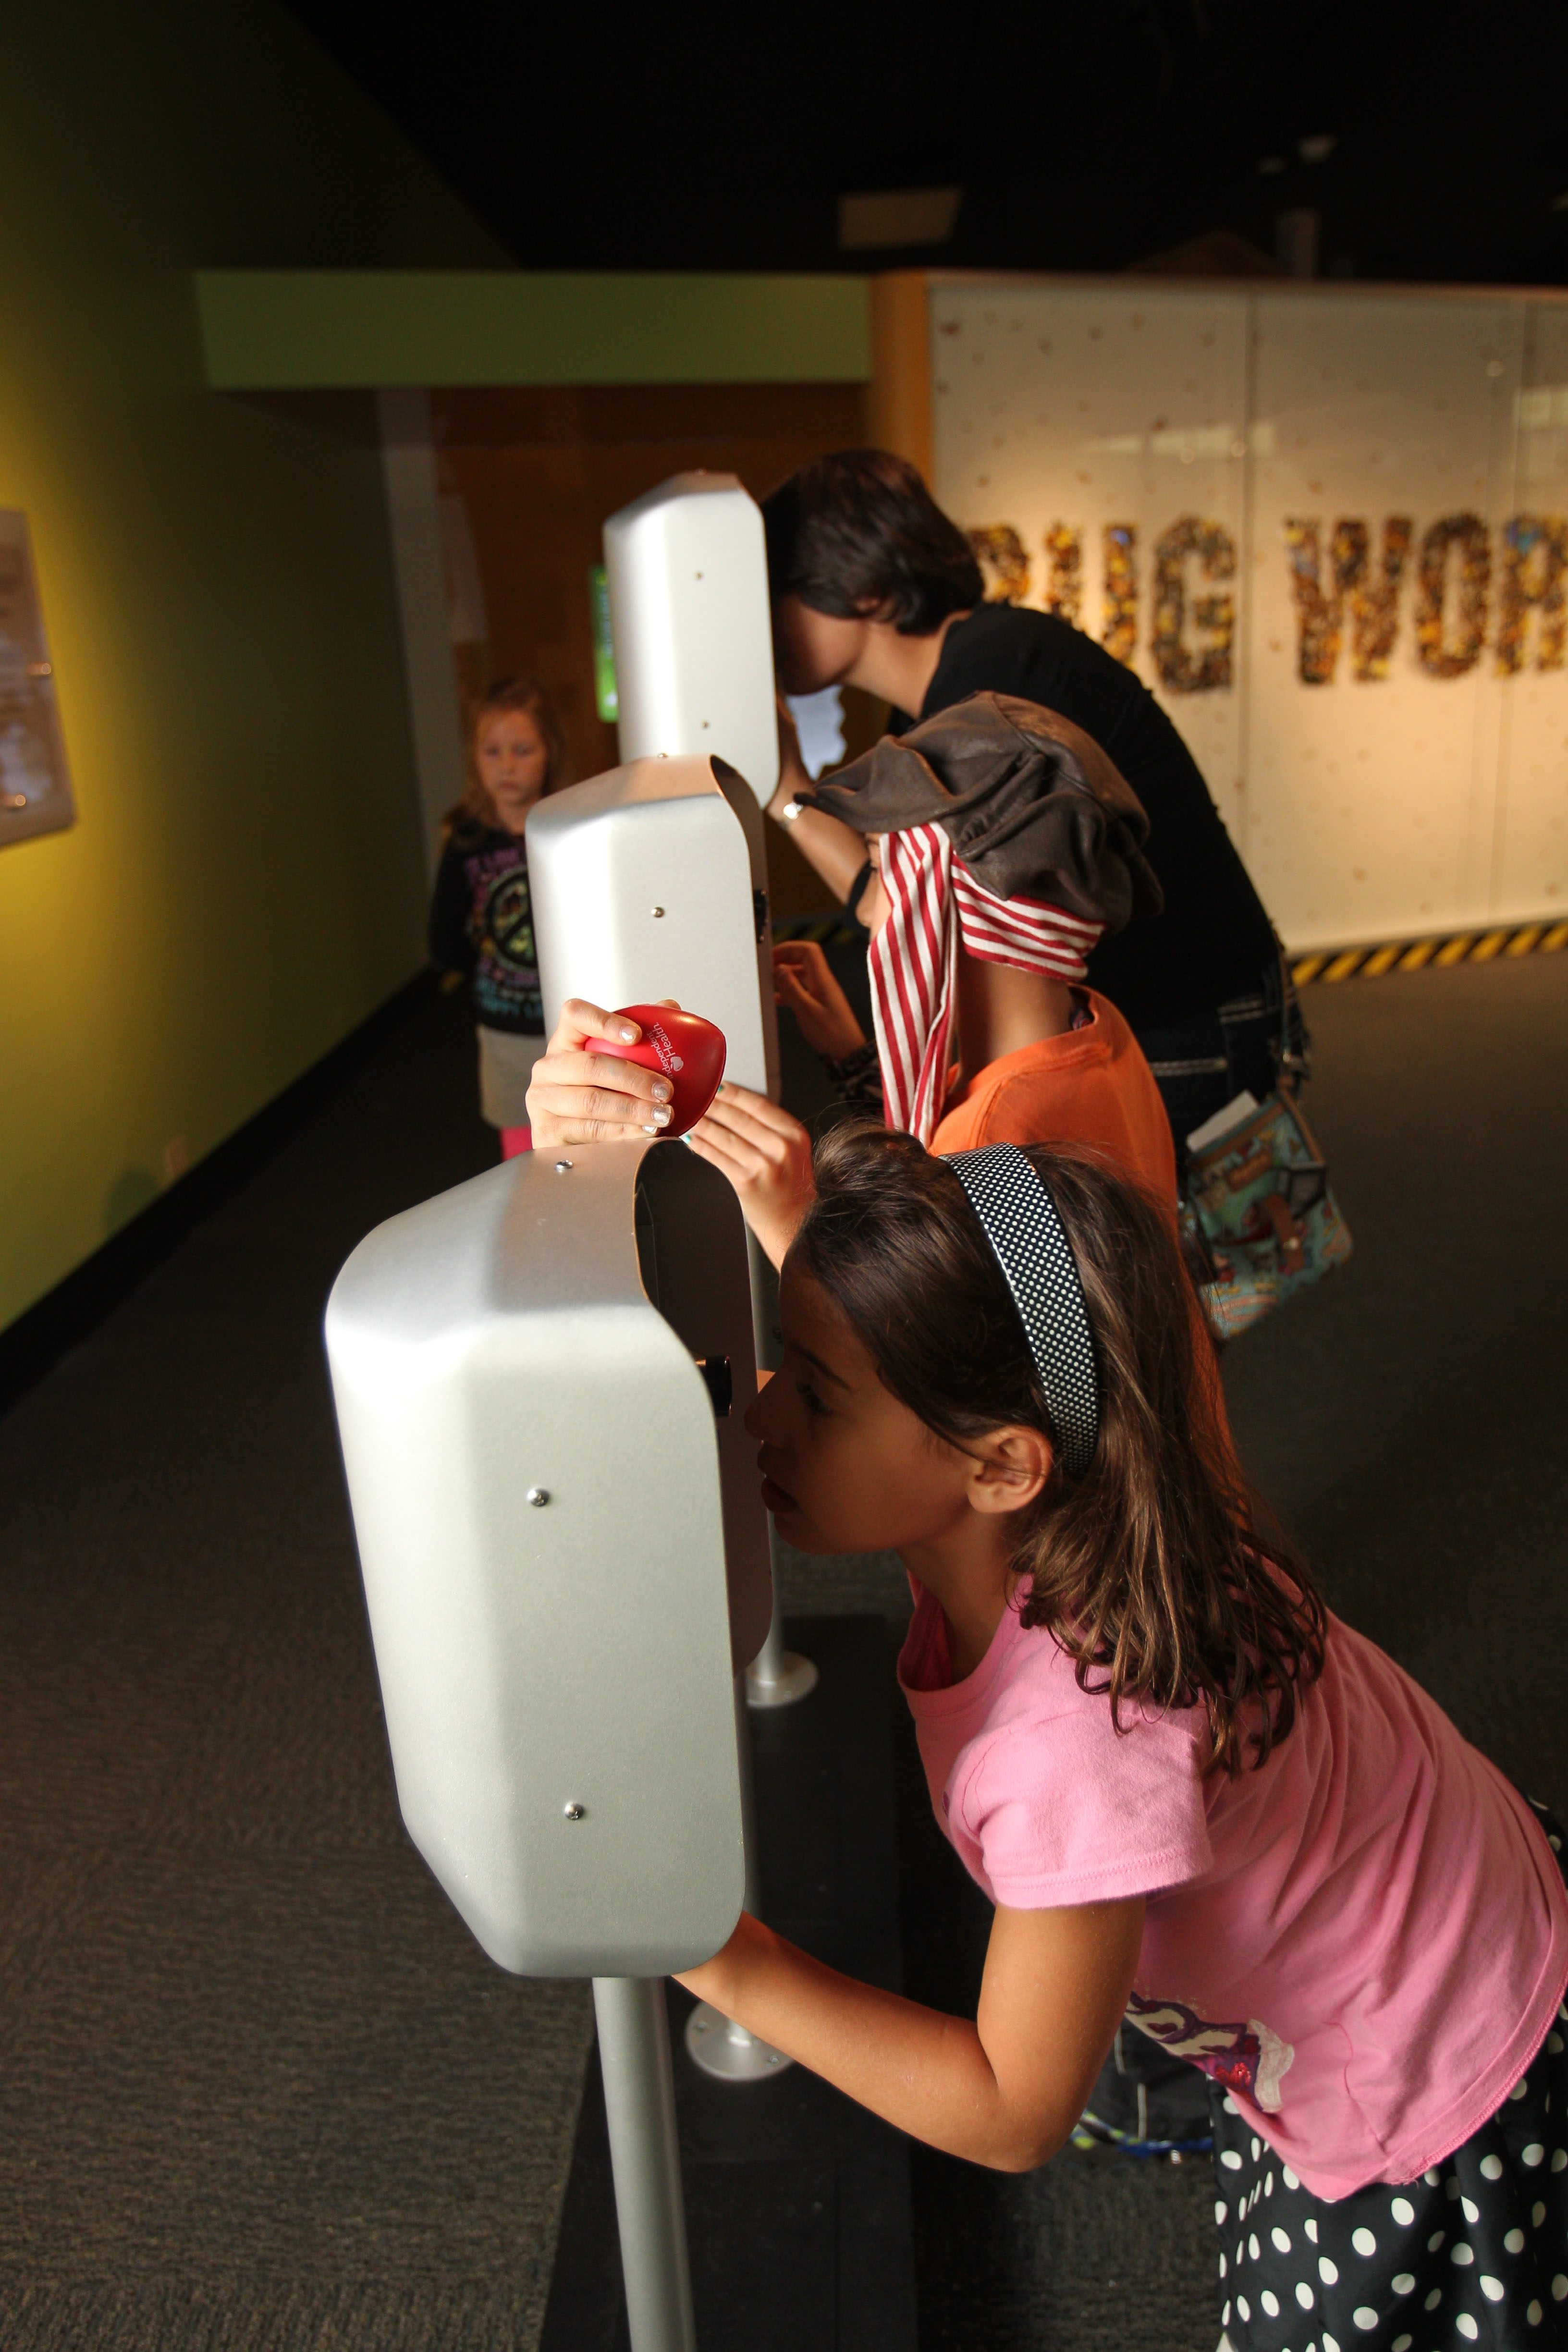 The Buffalo Museum of Science will host a Community Health Day with free admission from 10 a.m. to 4 p.m. Monday. (Sharon Cantillon/Buffalo News)